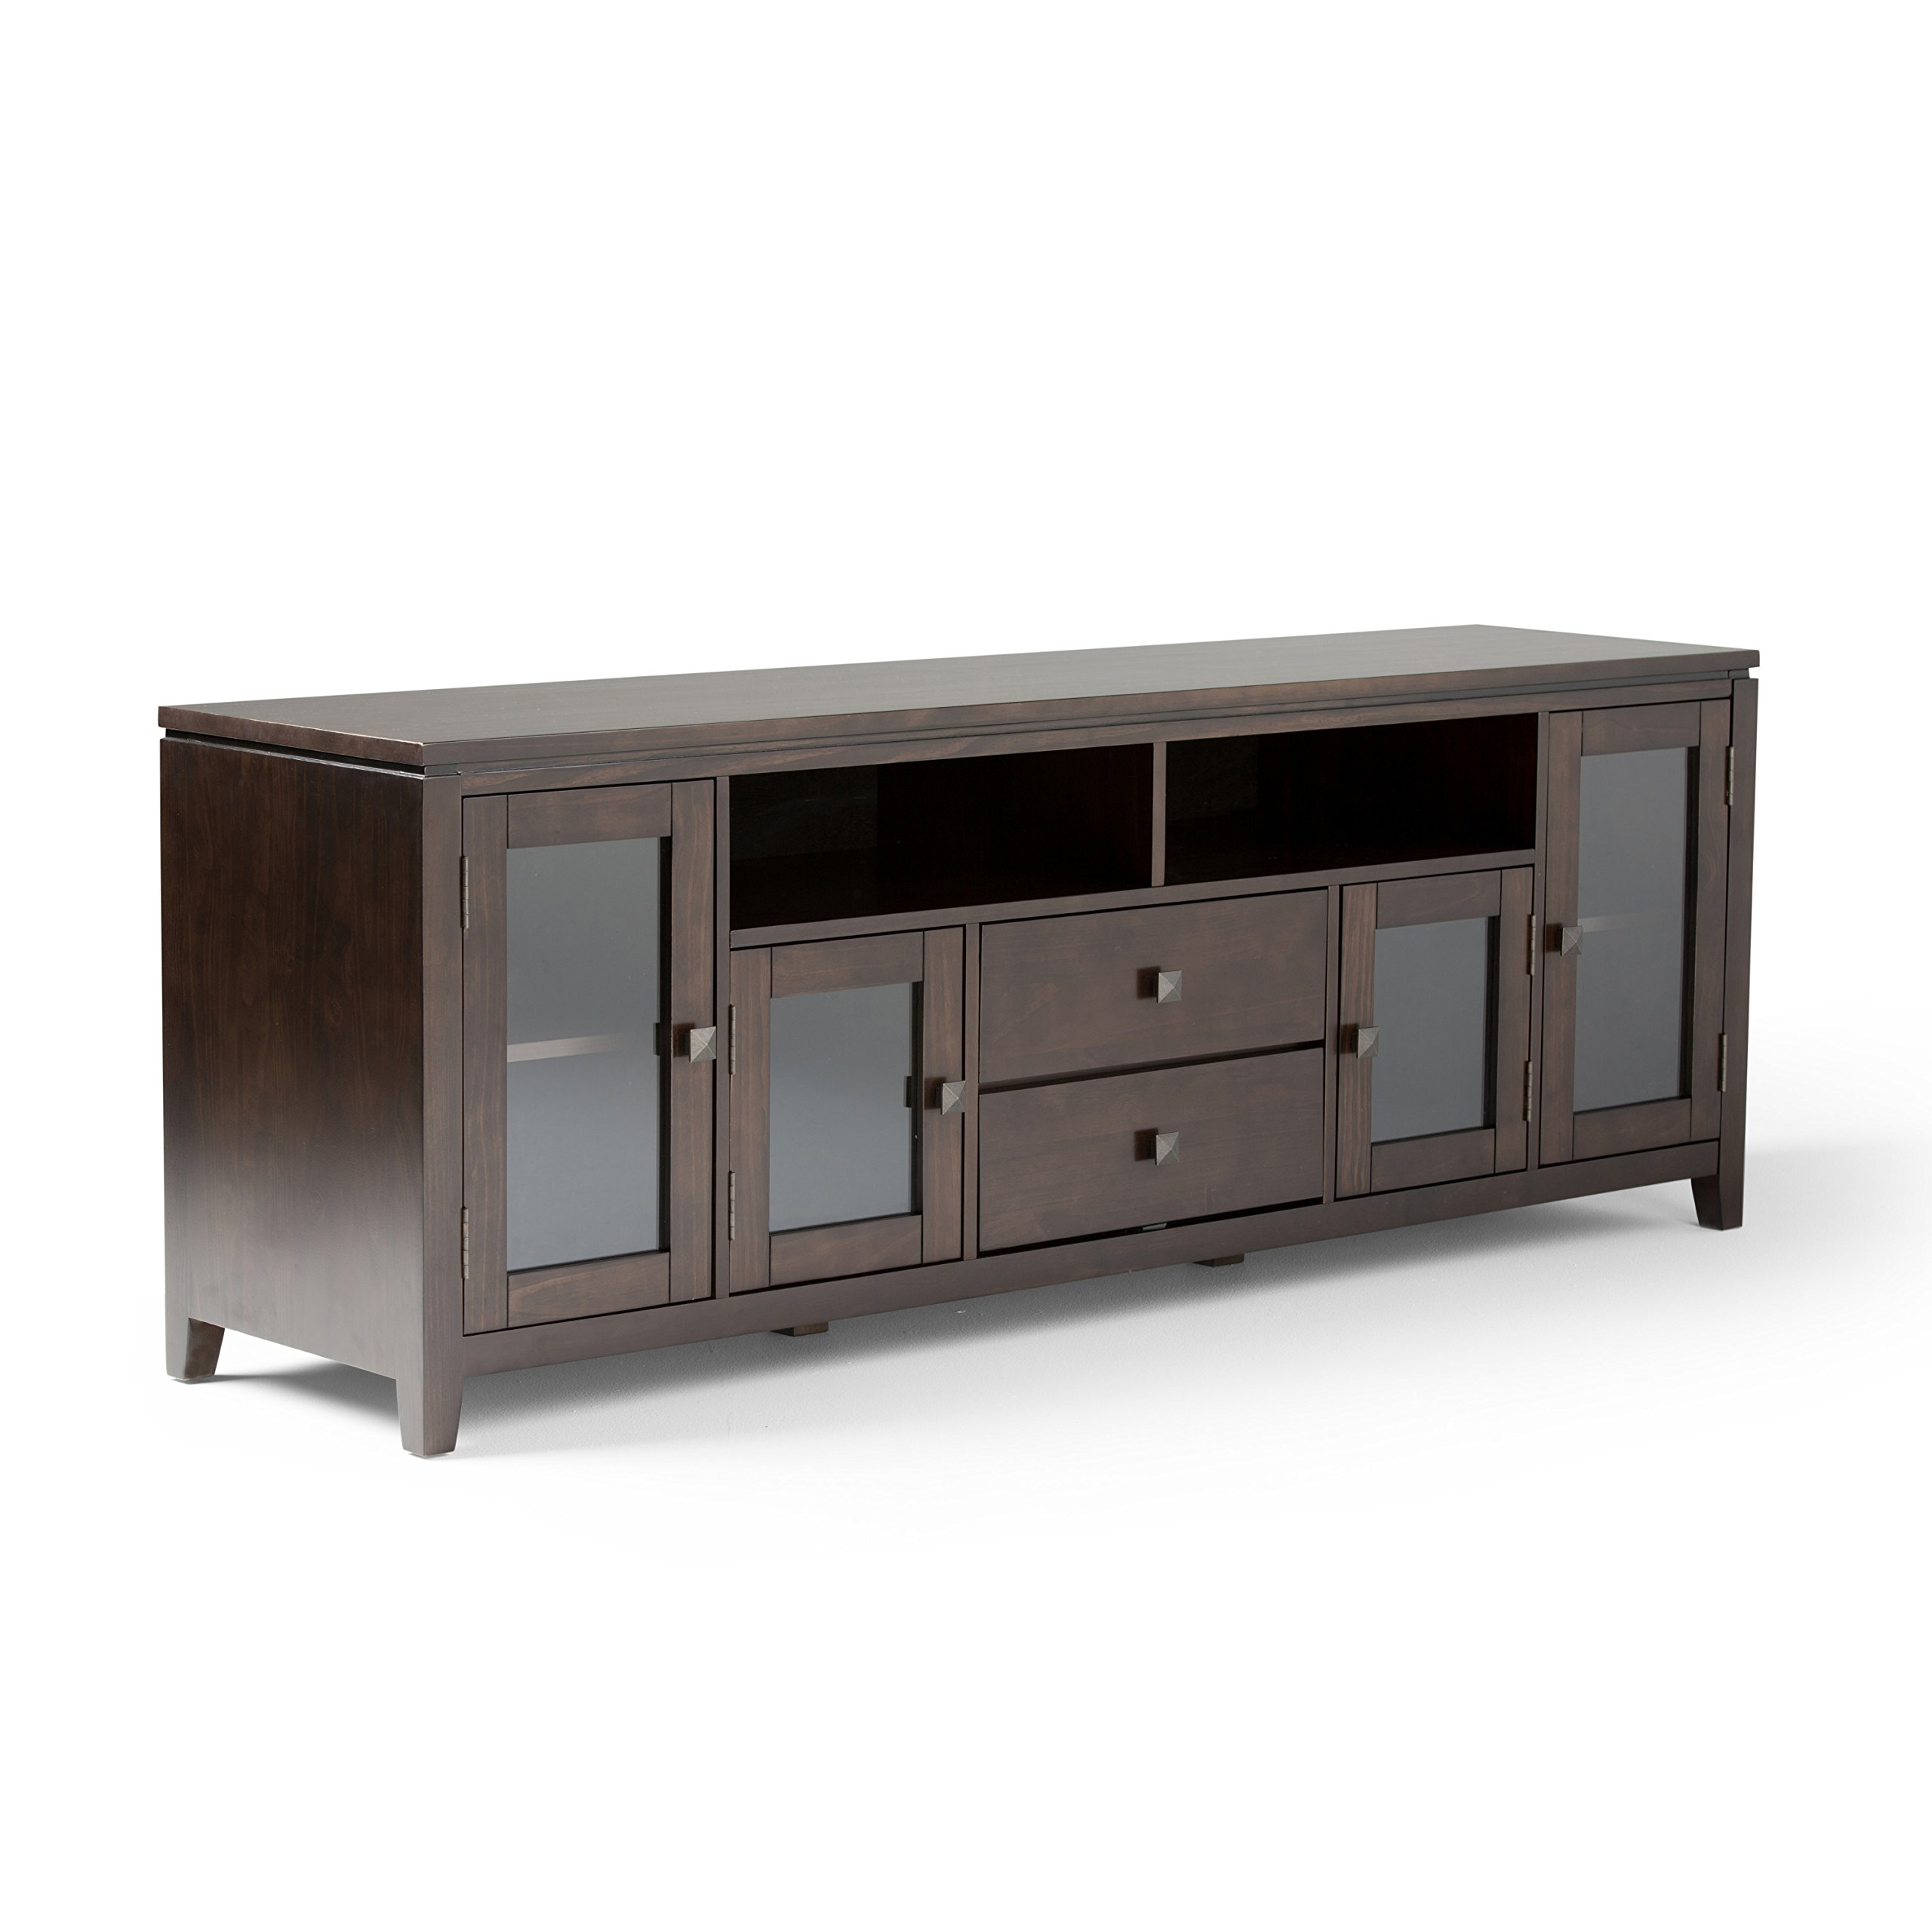 Simpli Home Cosmopolitan Wide TV Media Stand, 72'', Coffee Brown by Simpli Home